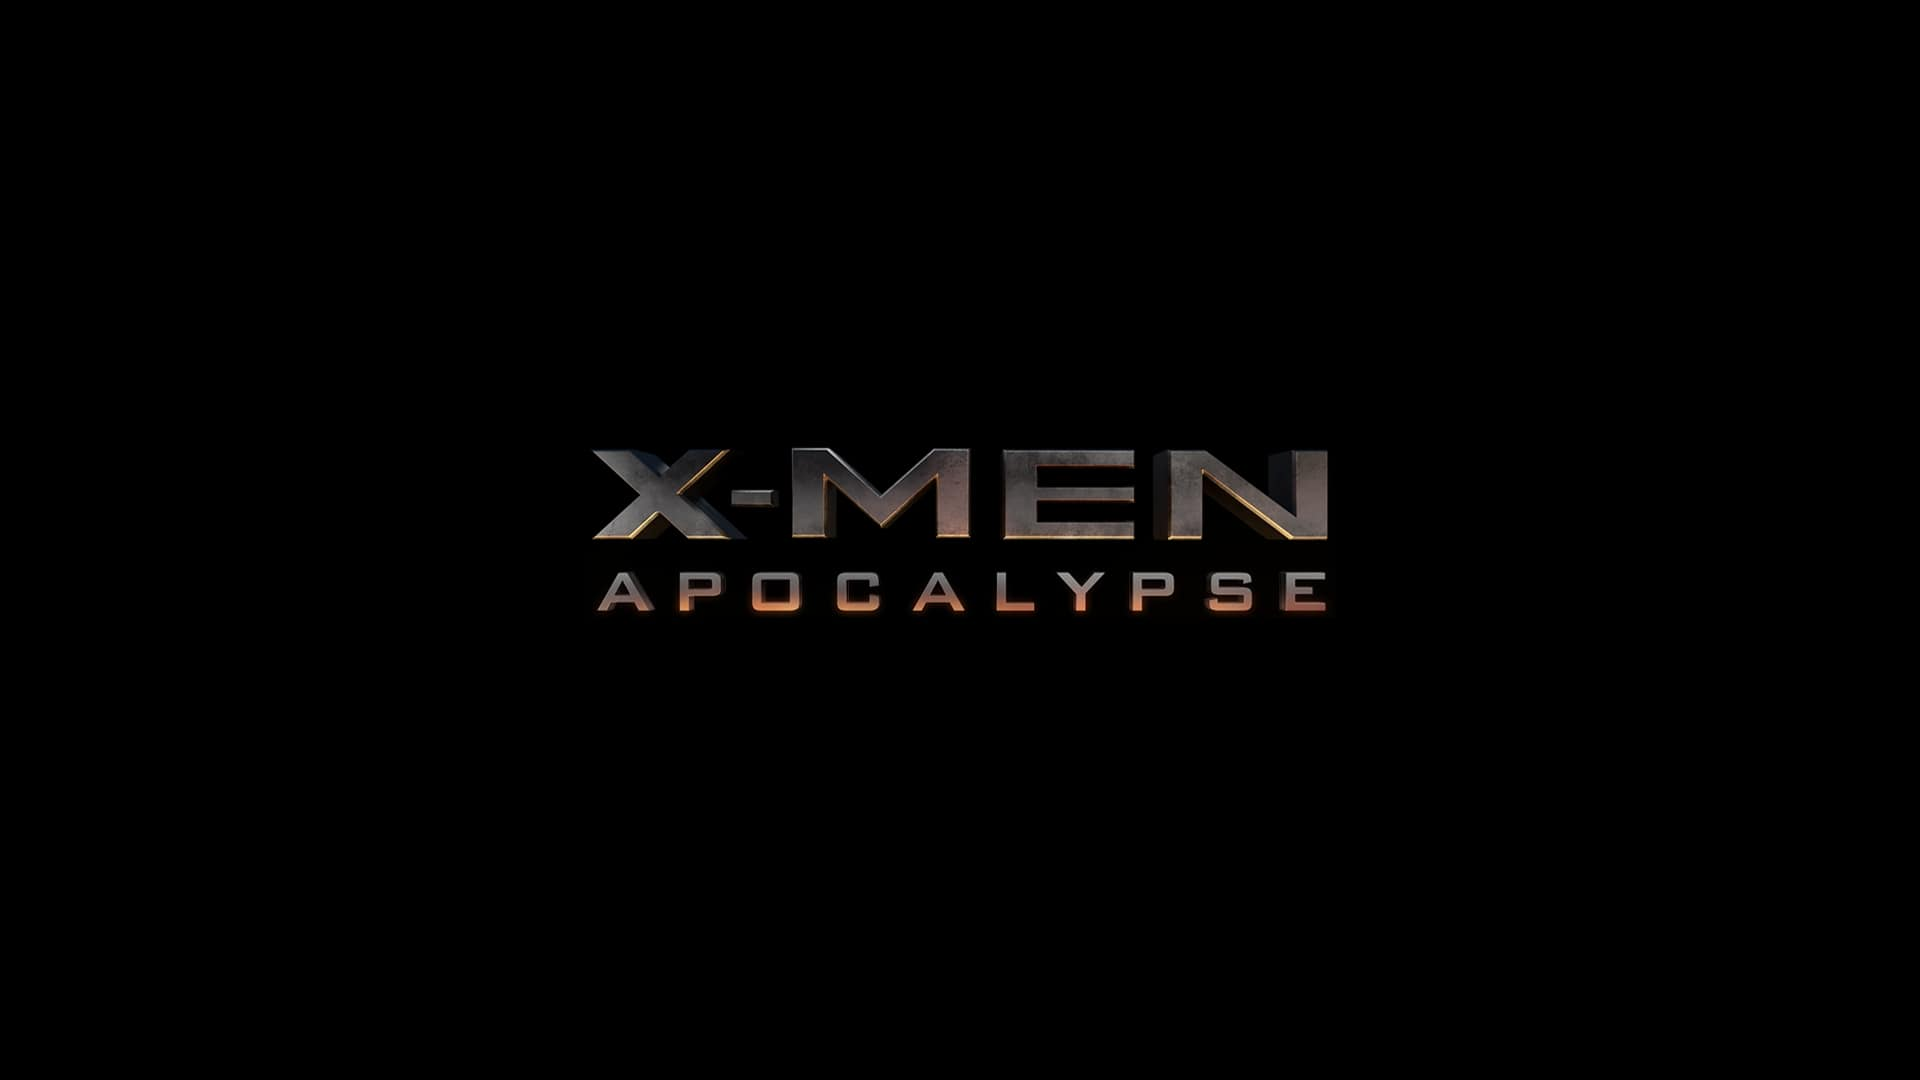 X-Men: Apocalypse background